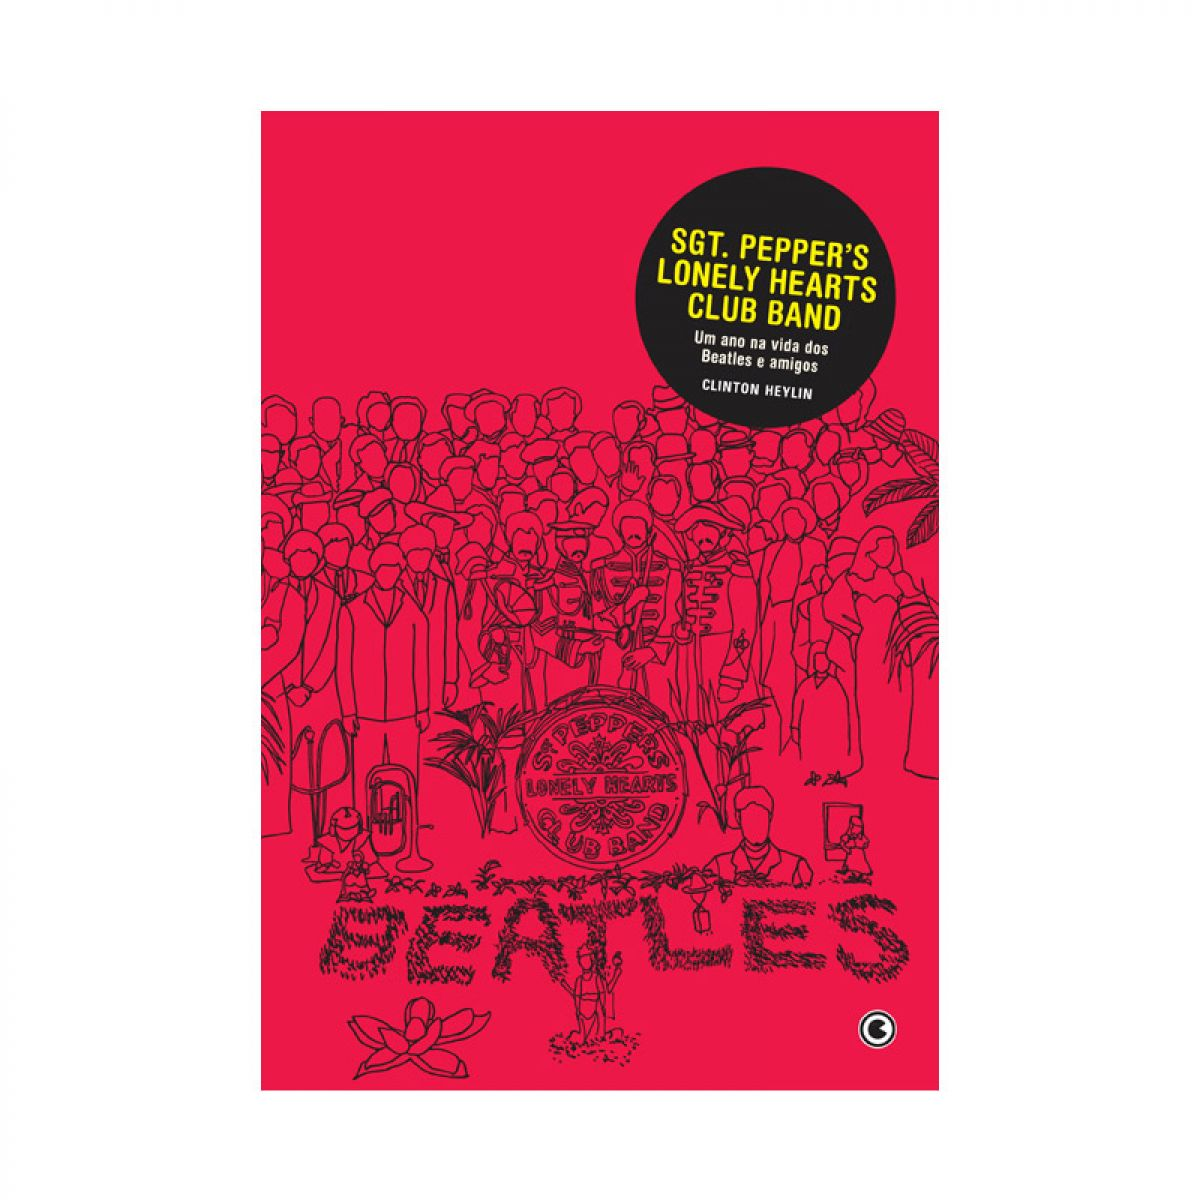 Livro Sgt. Pepper's Lonely Hearts Club Band